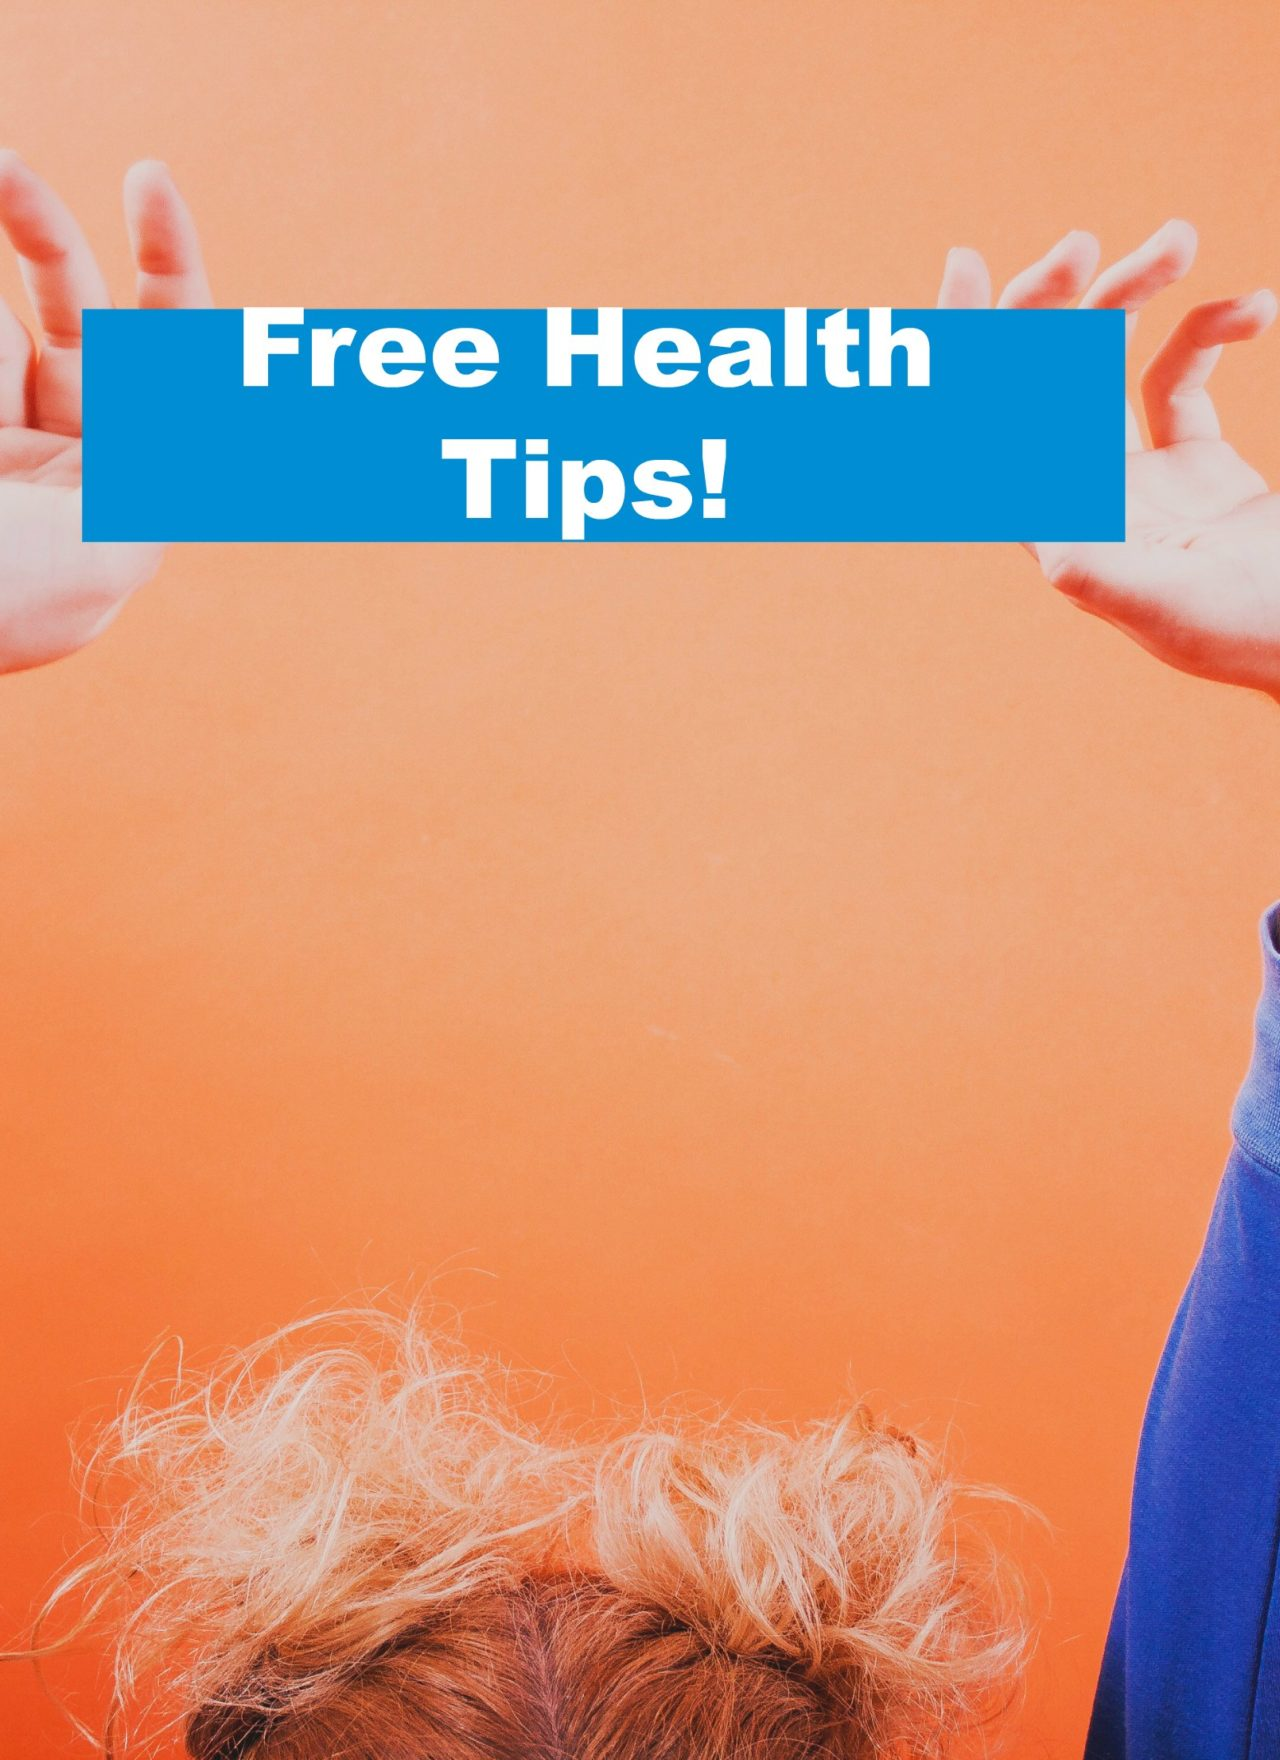 5 Encouraging Health Tips to Turn YOUR Health Around!